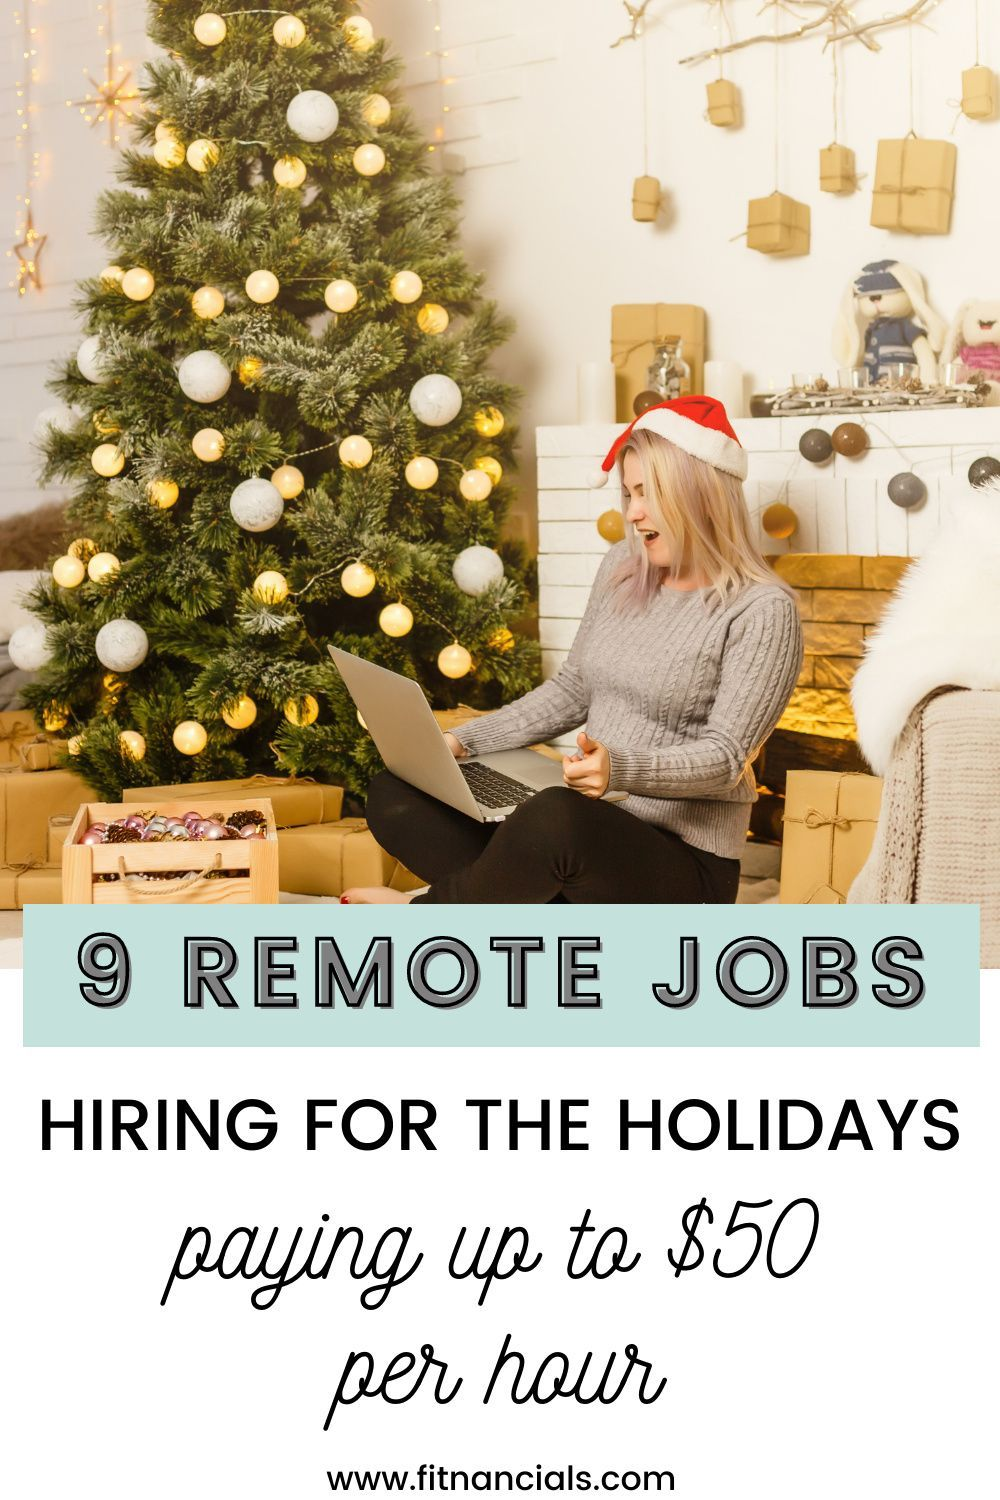 9 Remote Jobs Hiring For The Holidays That Pay Up To 50 Per Hour In 2020 Jobs Hiring Holiday Pay Work From Home Jobs